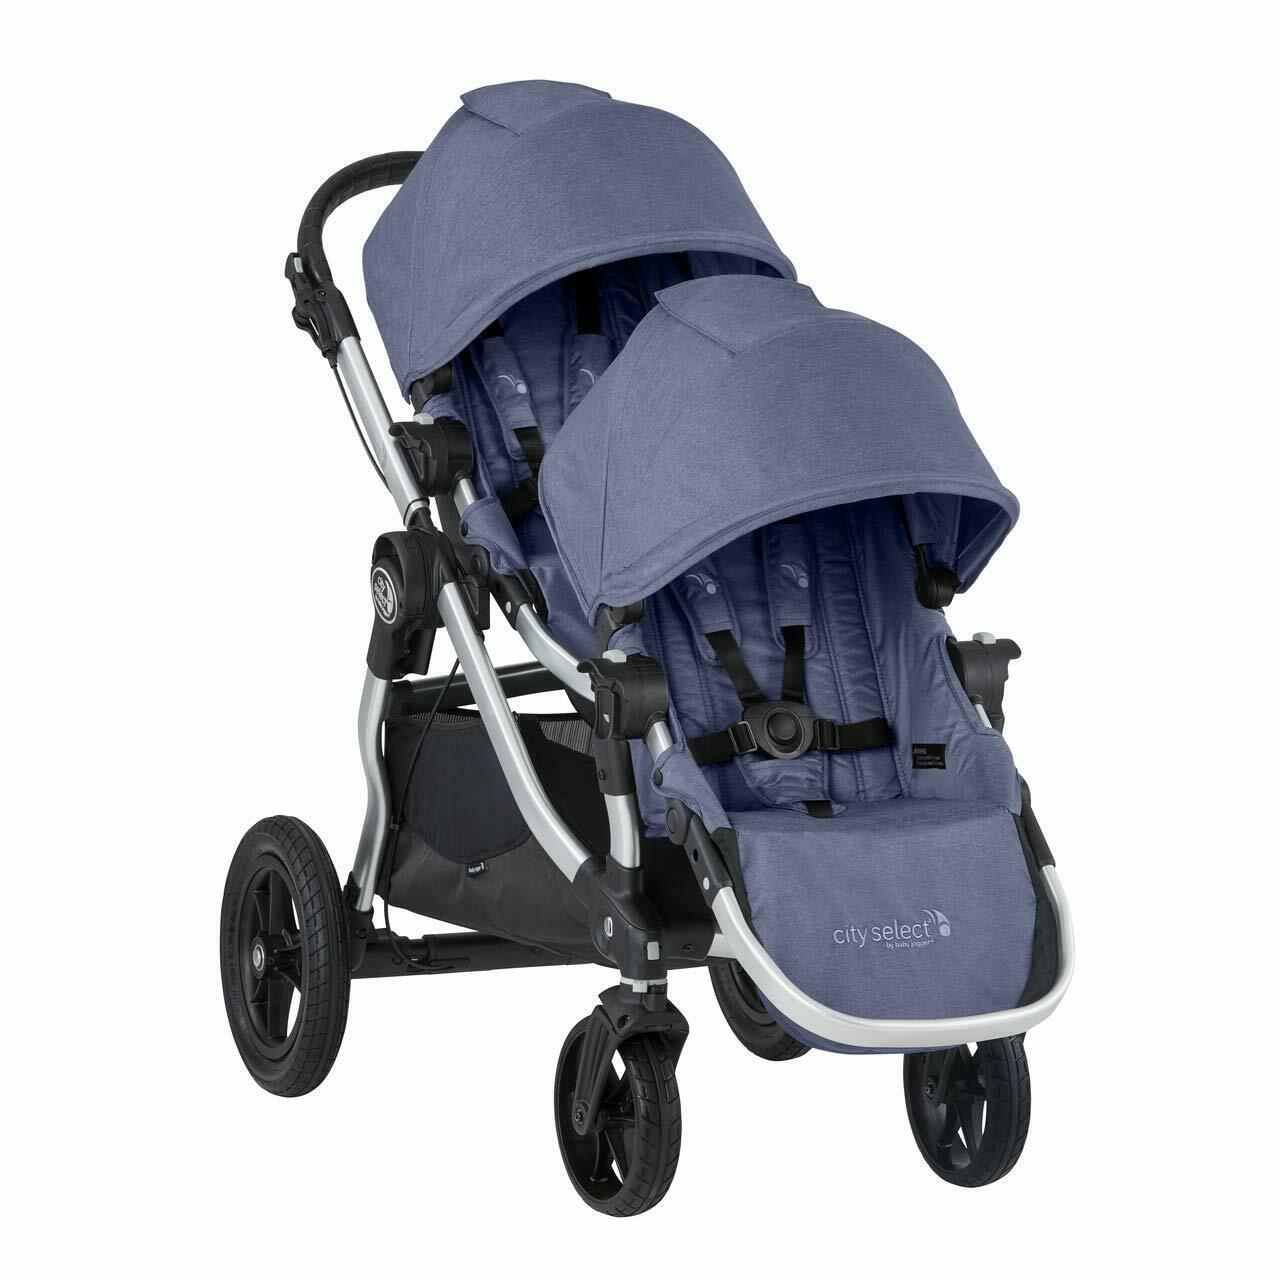 Baby Jogger 2019 City Select Double Stroller w/ 2nd Seat Kit - Moonlight